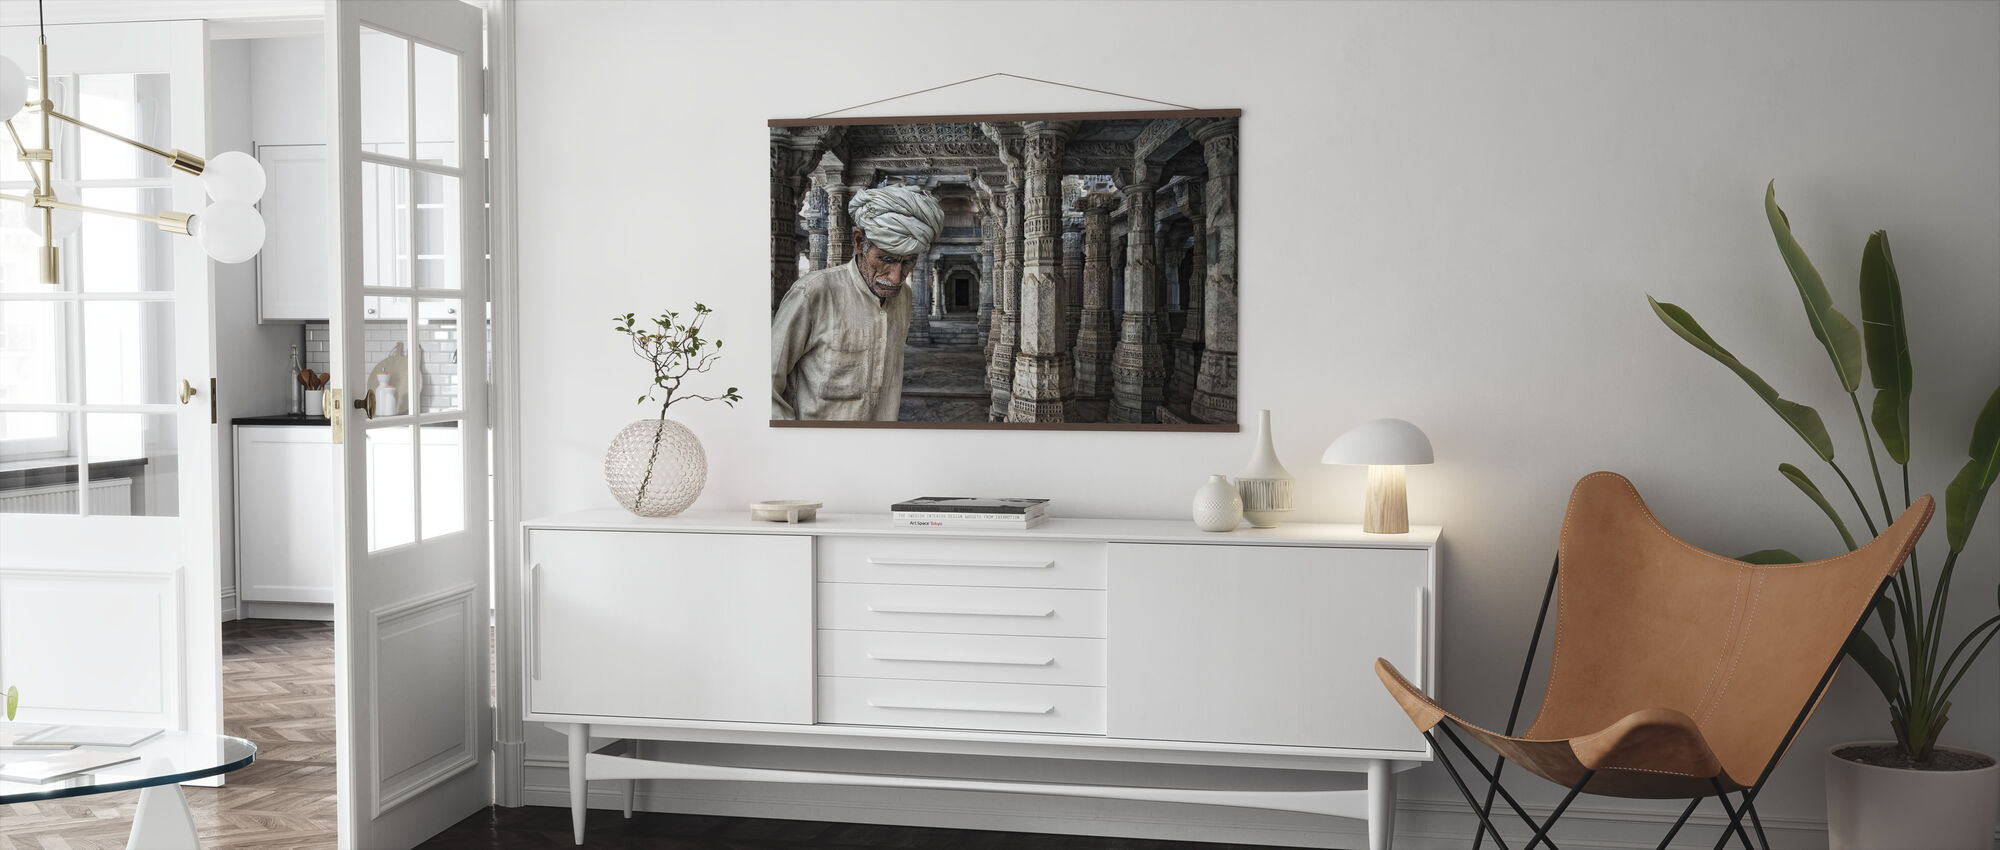 A Place for Meditation - Poster - Living Room